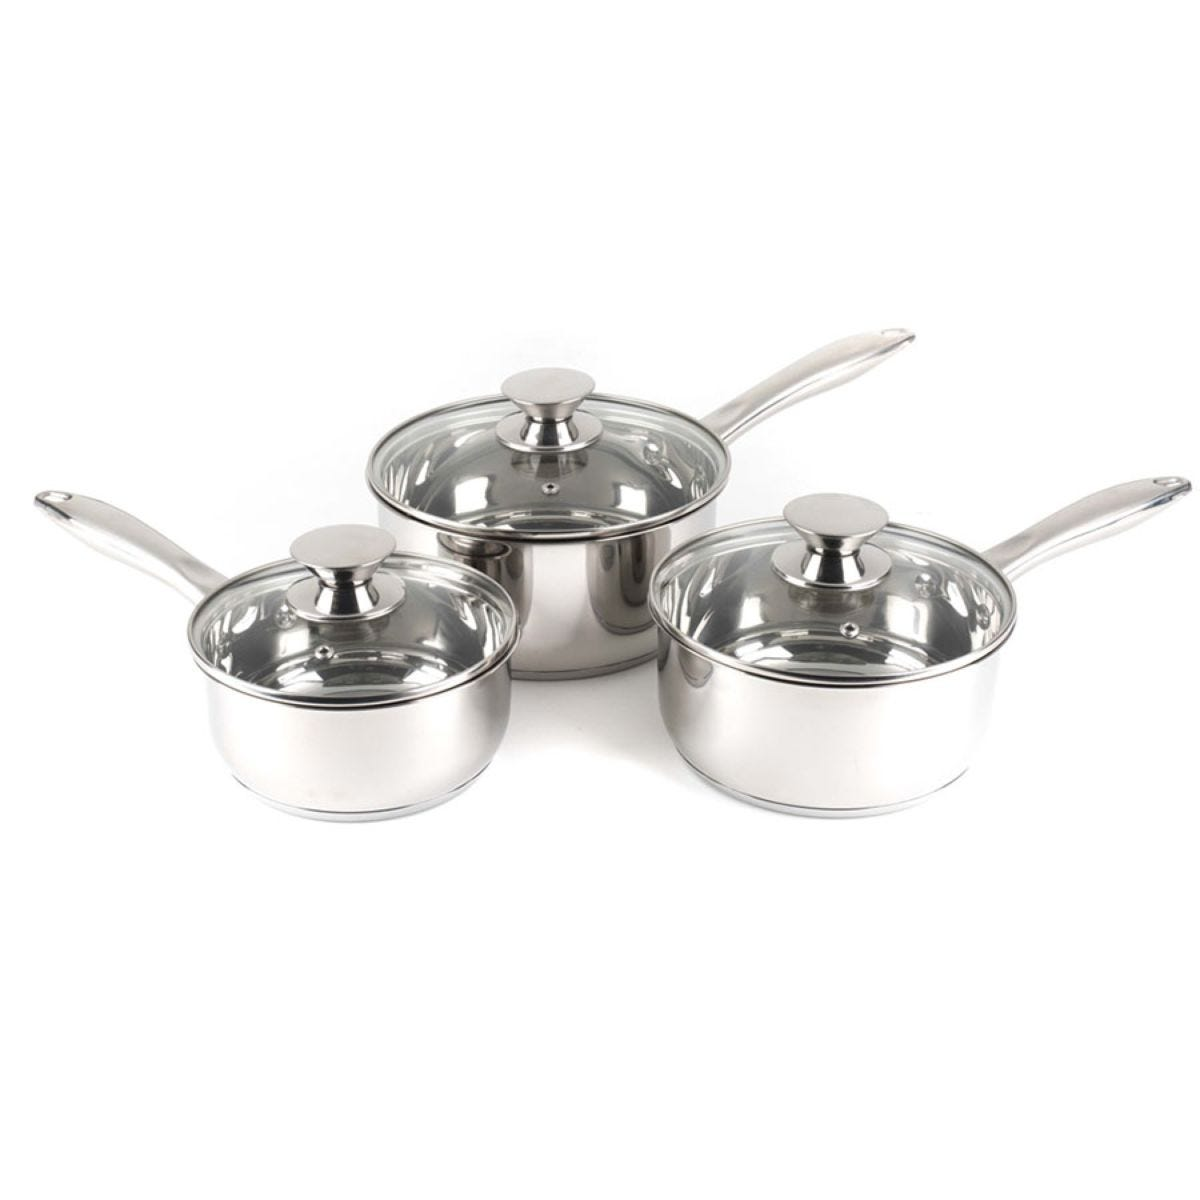 Russell Hobbs 3-Piece Classic Collection Saucepan Set - Silver